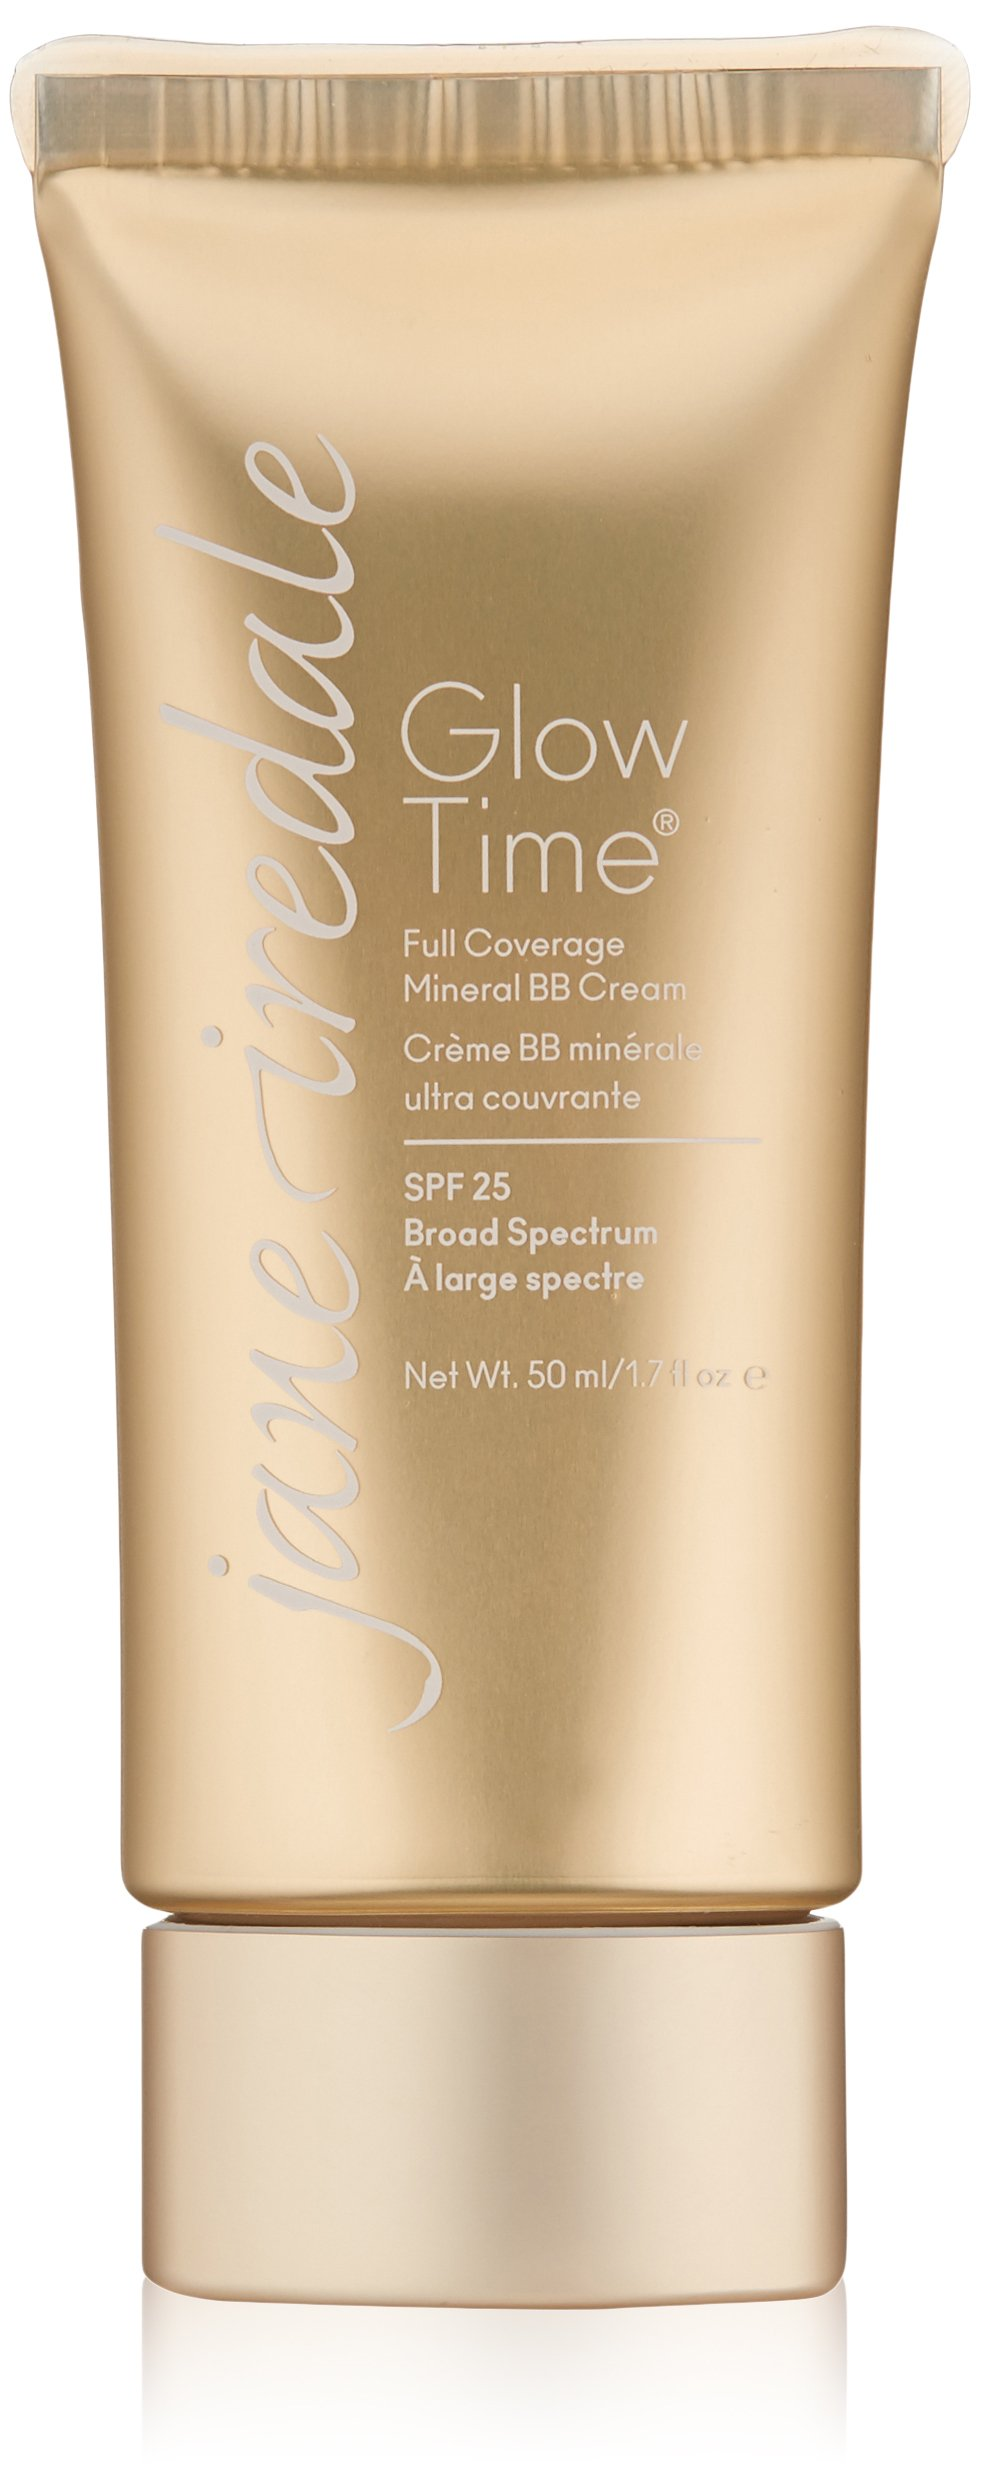 jane iredale Glow Time Full Coverage Mineral BB Cream, BB7, 1.7 fl. oz. by jane iredale